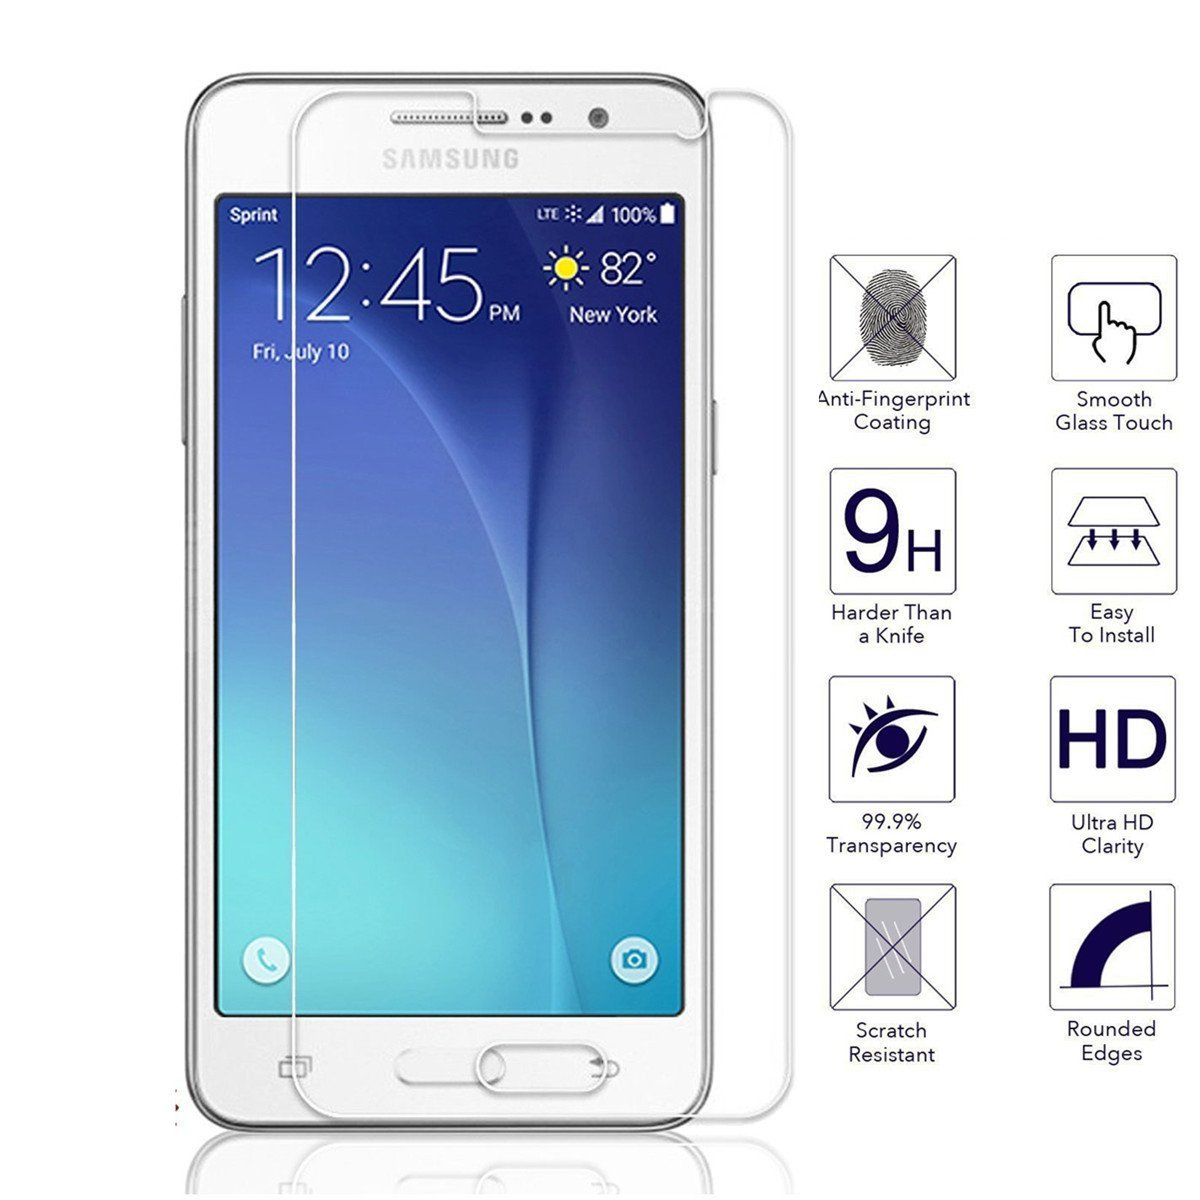 Tempered <font><b>Glass</b></font> For <font><b>Samsung</b></font> Galaxy <font><b>S3</b></font> S4 S5 <font><b>NEO</b></font> S6 J7 J5 J3 J1 2016 Core J2 Prime G360 G361F Grand Prime VE G530 G531F G531H image